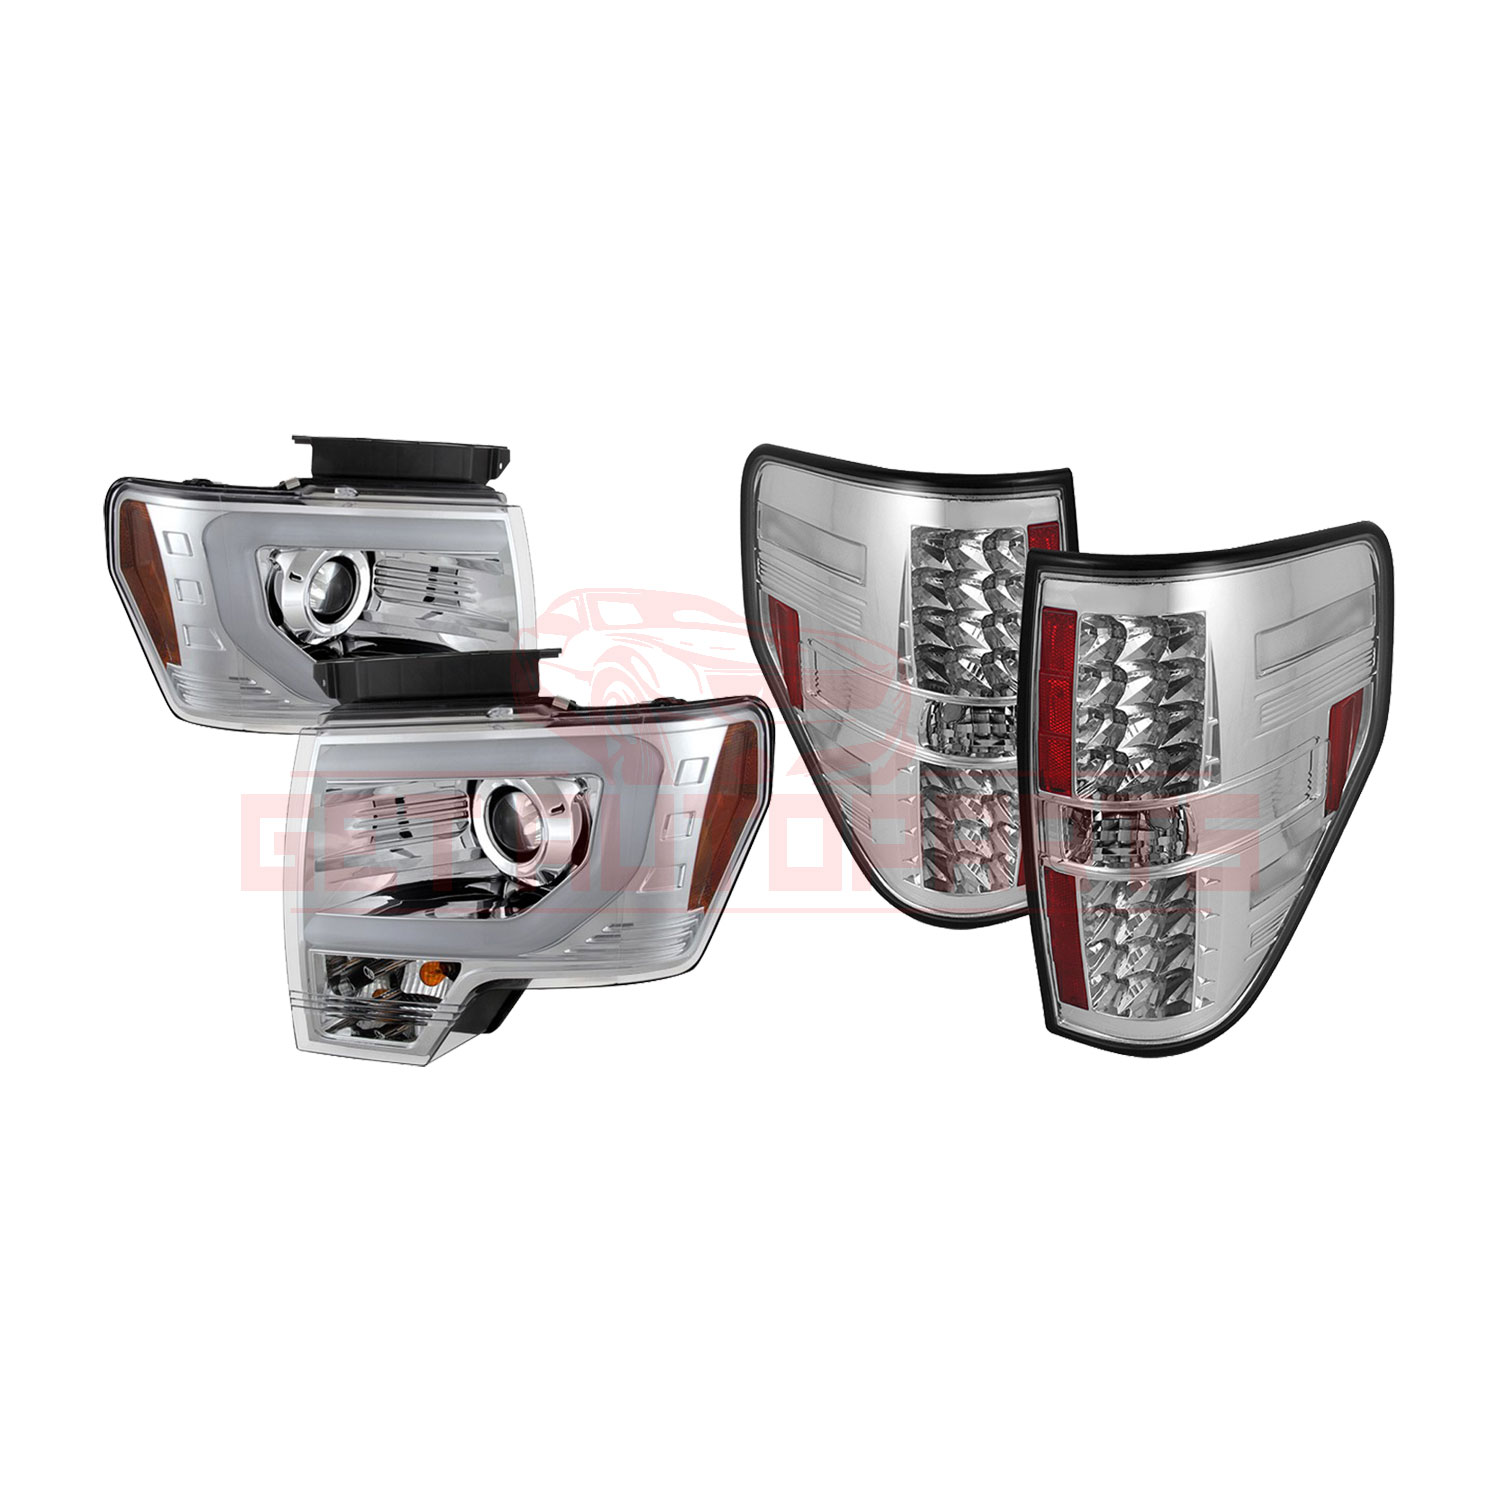 Spyder Projector Headlights & LED Tail Lights for Ford F150 2009-2014 part in Headlight & Tail Light Covers category